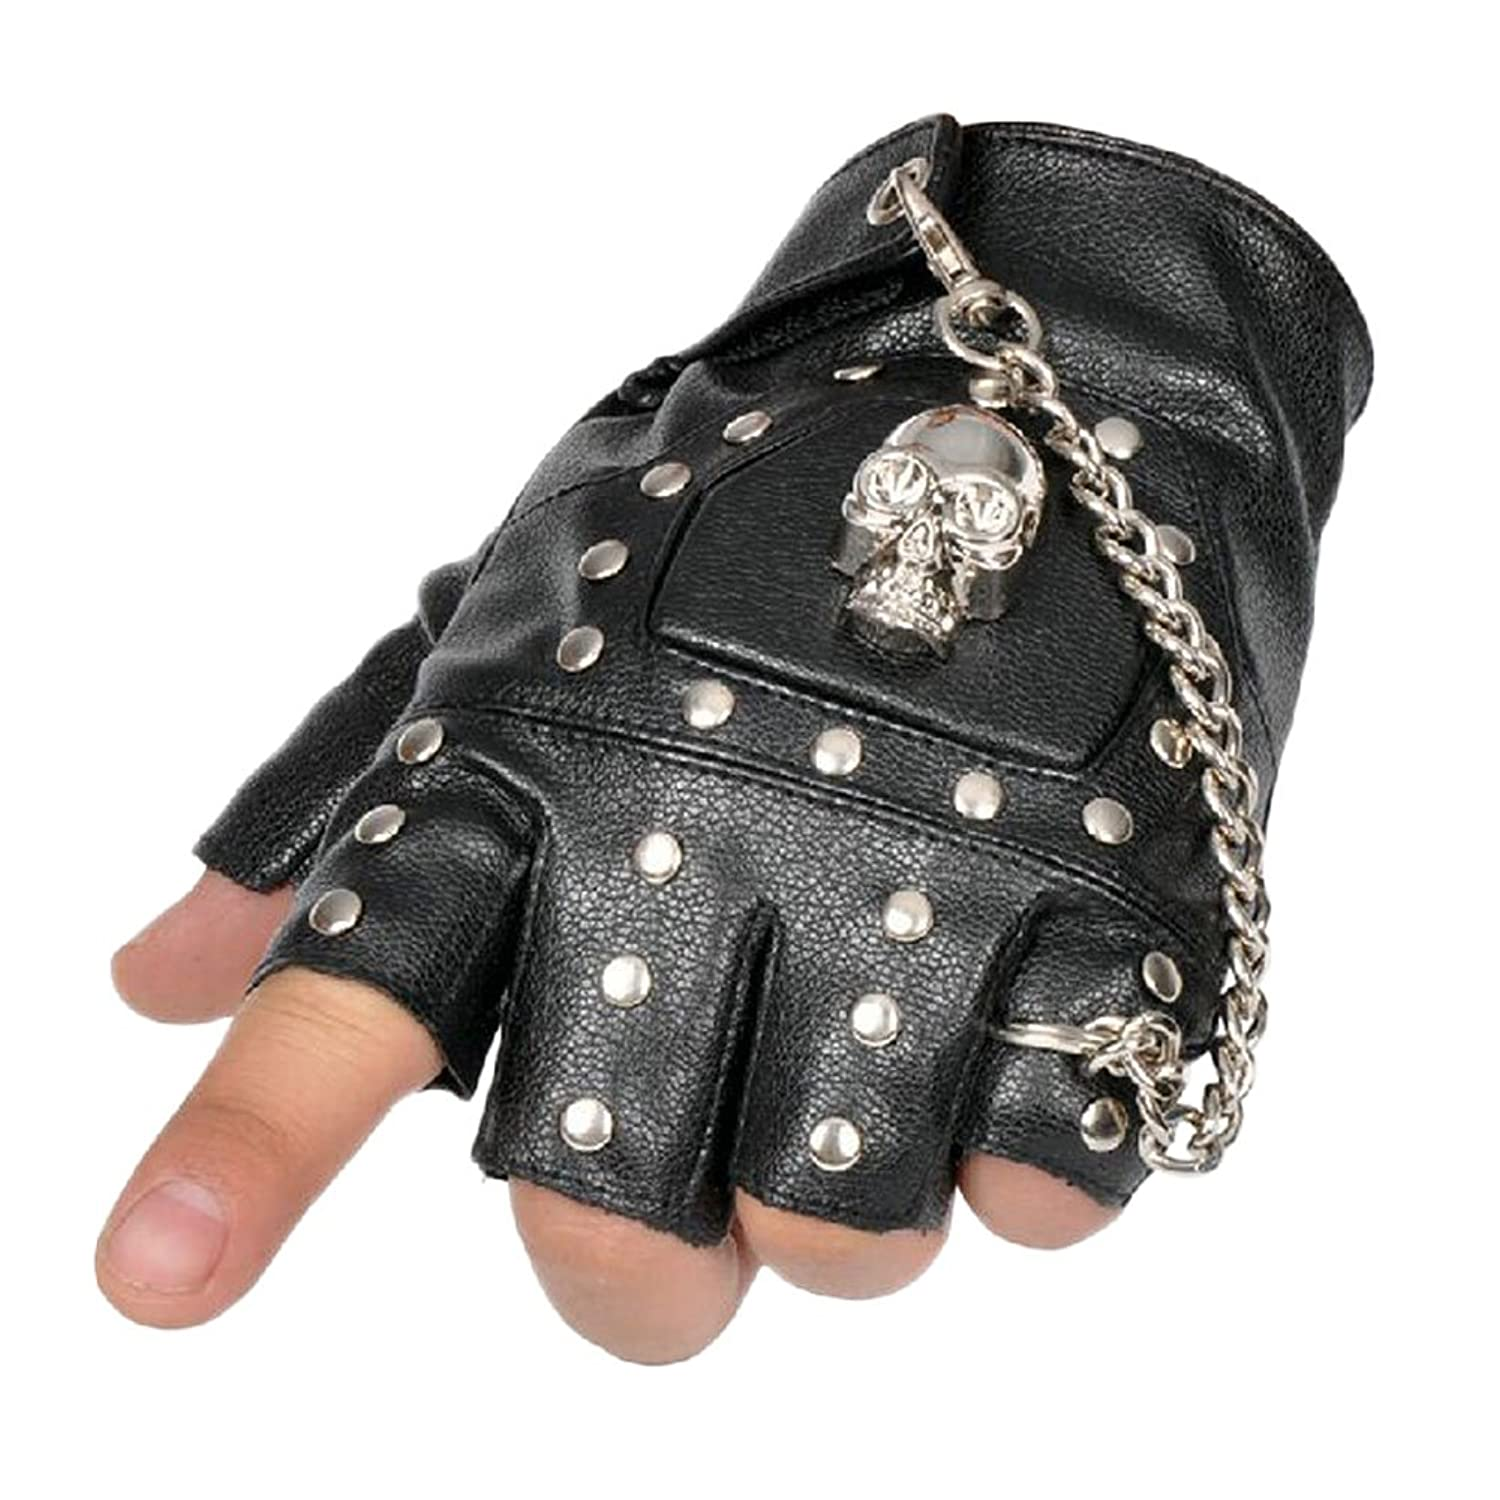 Fingerless gloves amazon - Amazon Com Minibee Men S Fingerless Stud Metal Skull Chain Gloves Cycling Rock Gothic Punk Style Gloves A Pair Black One Size Clothing